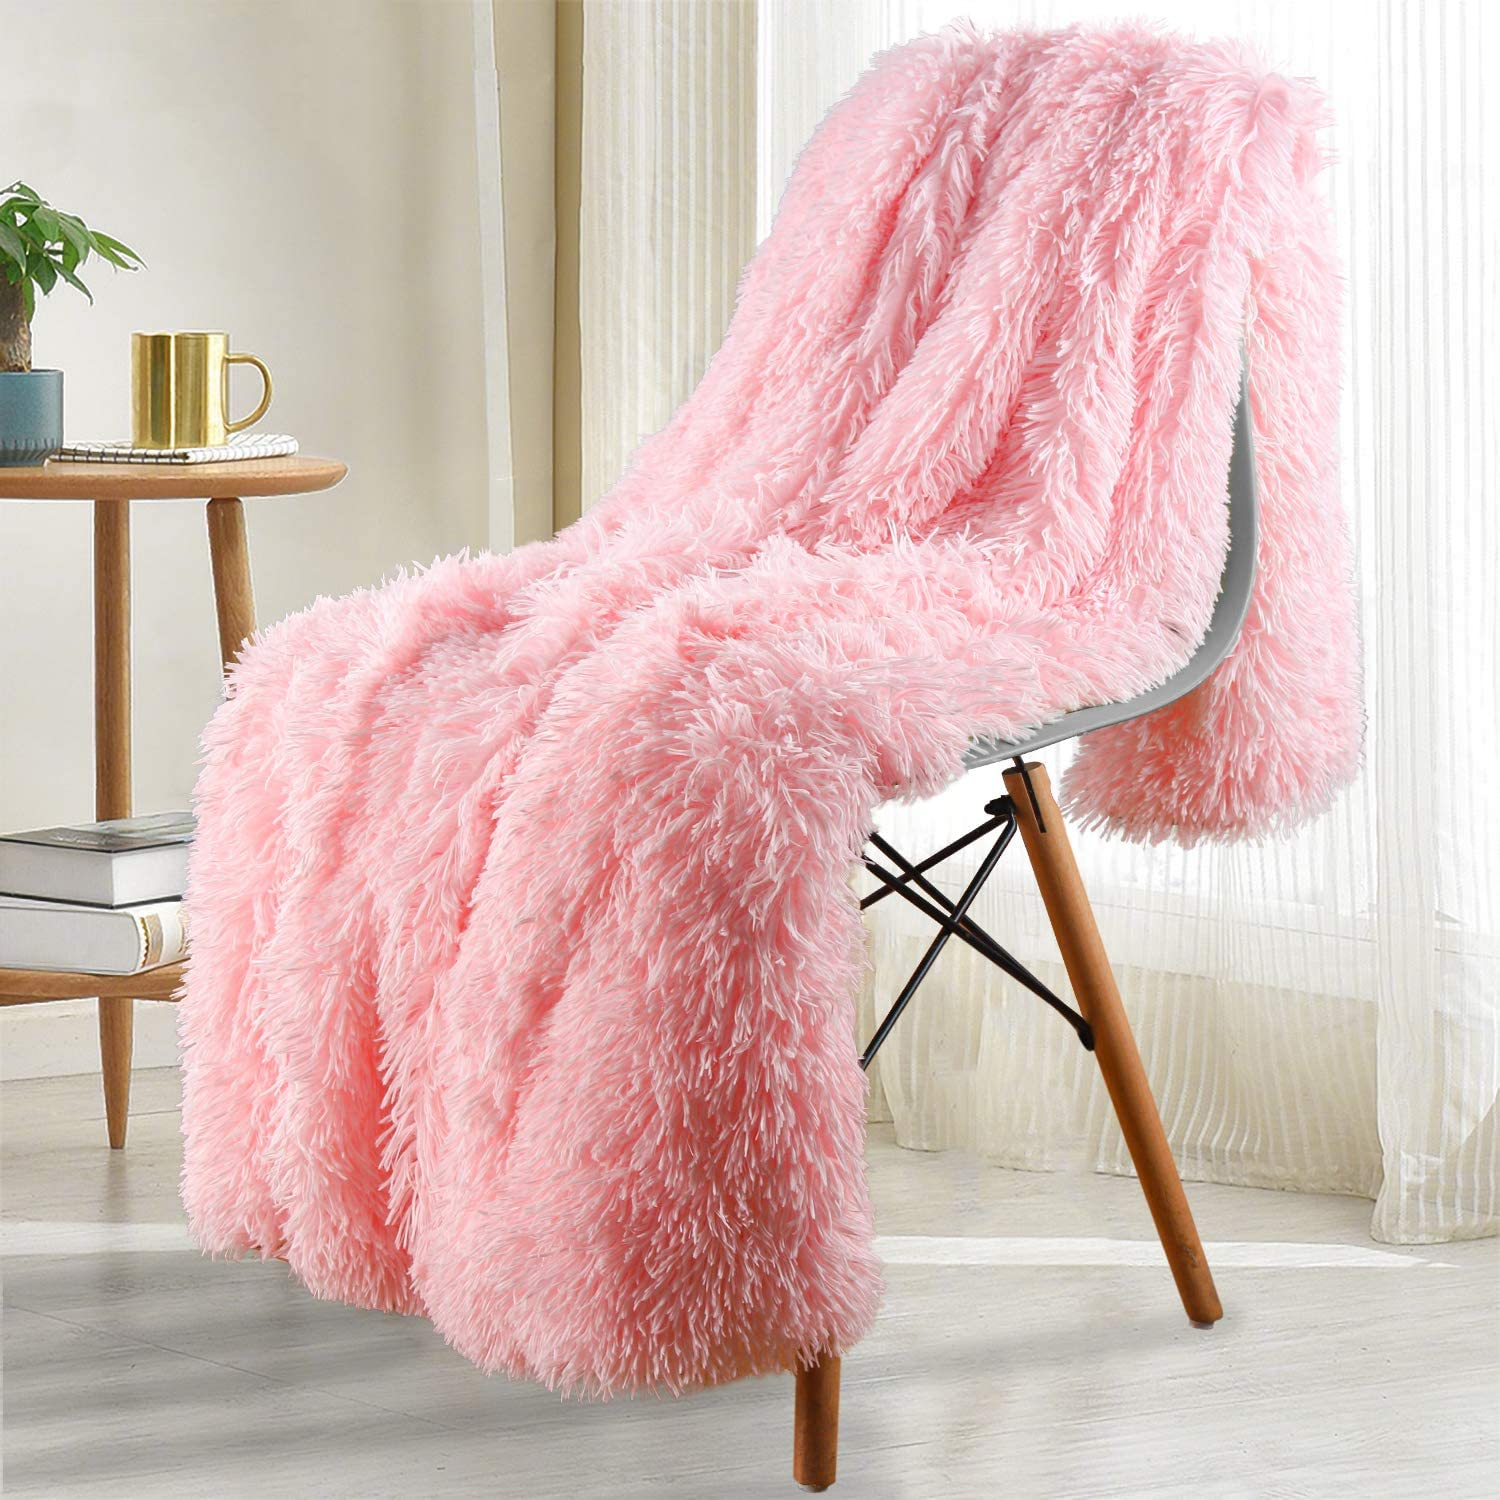 Noahas Shaggy Longfur Throw Blanket with Sherpa Warm Underside, Super Soft Cozy Large Plush Fuzzy Faux Fur Blanket, Lightweight and Washable Kids Girls Room Decorative Blanket, 50''x60'', Light Pink